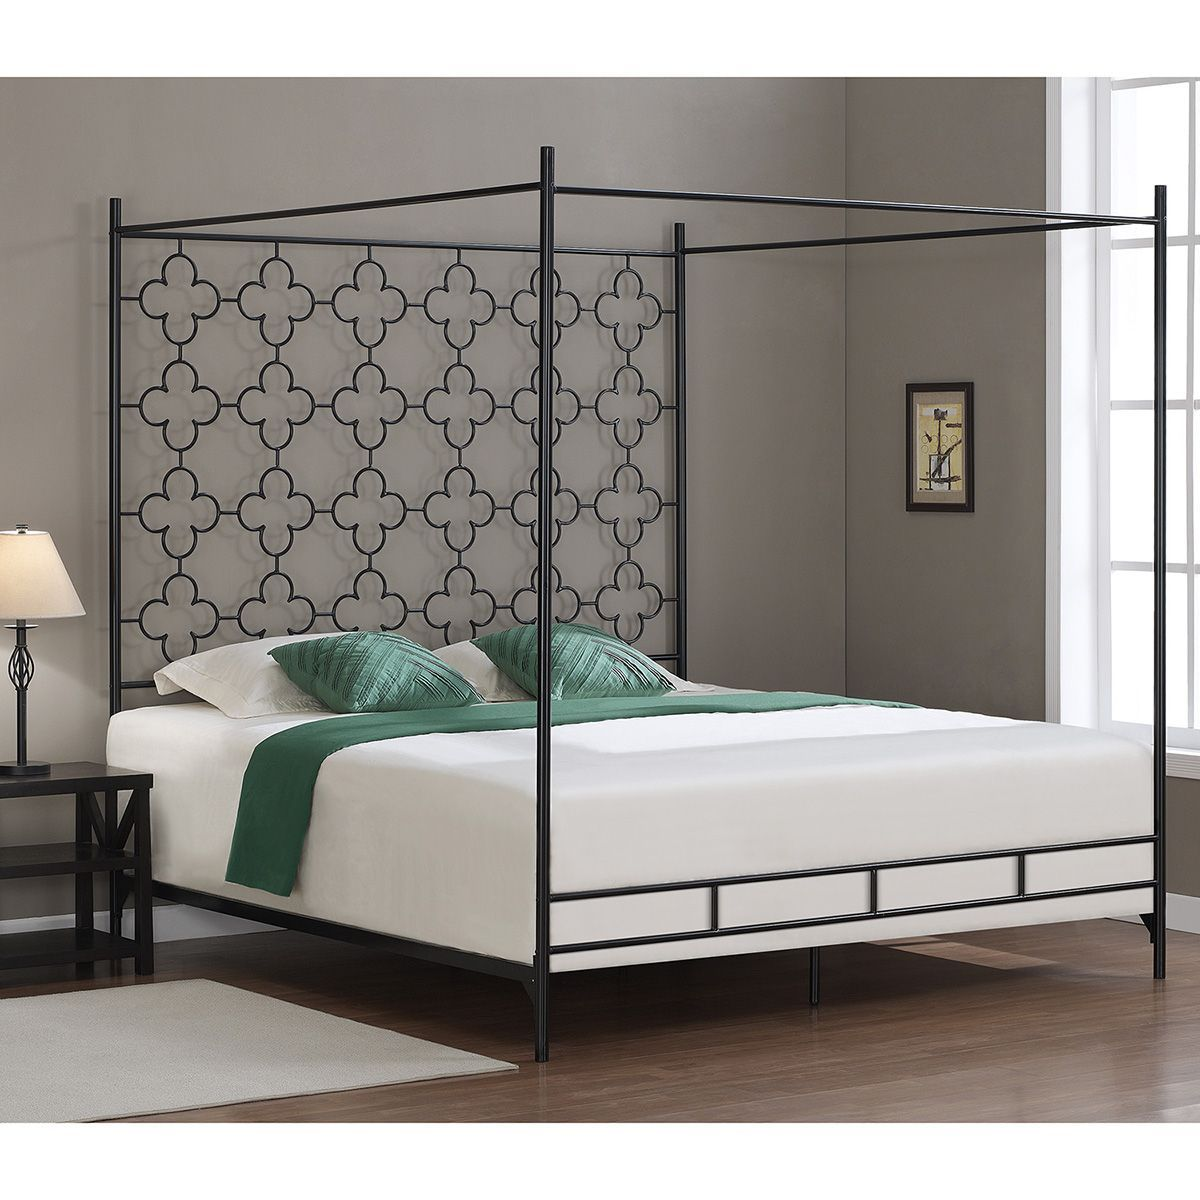 The Curated Nomad Quatrefoil King Canopy Bed Canopy bed